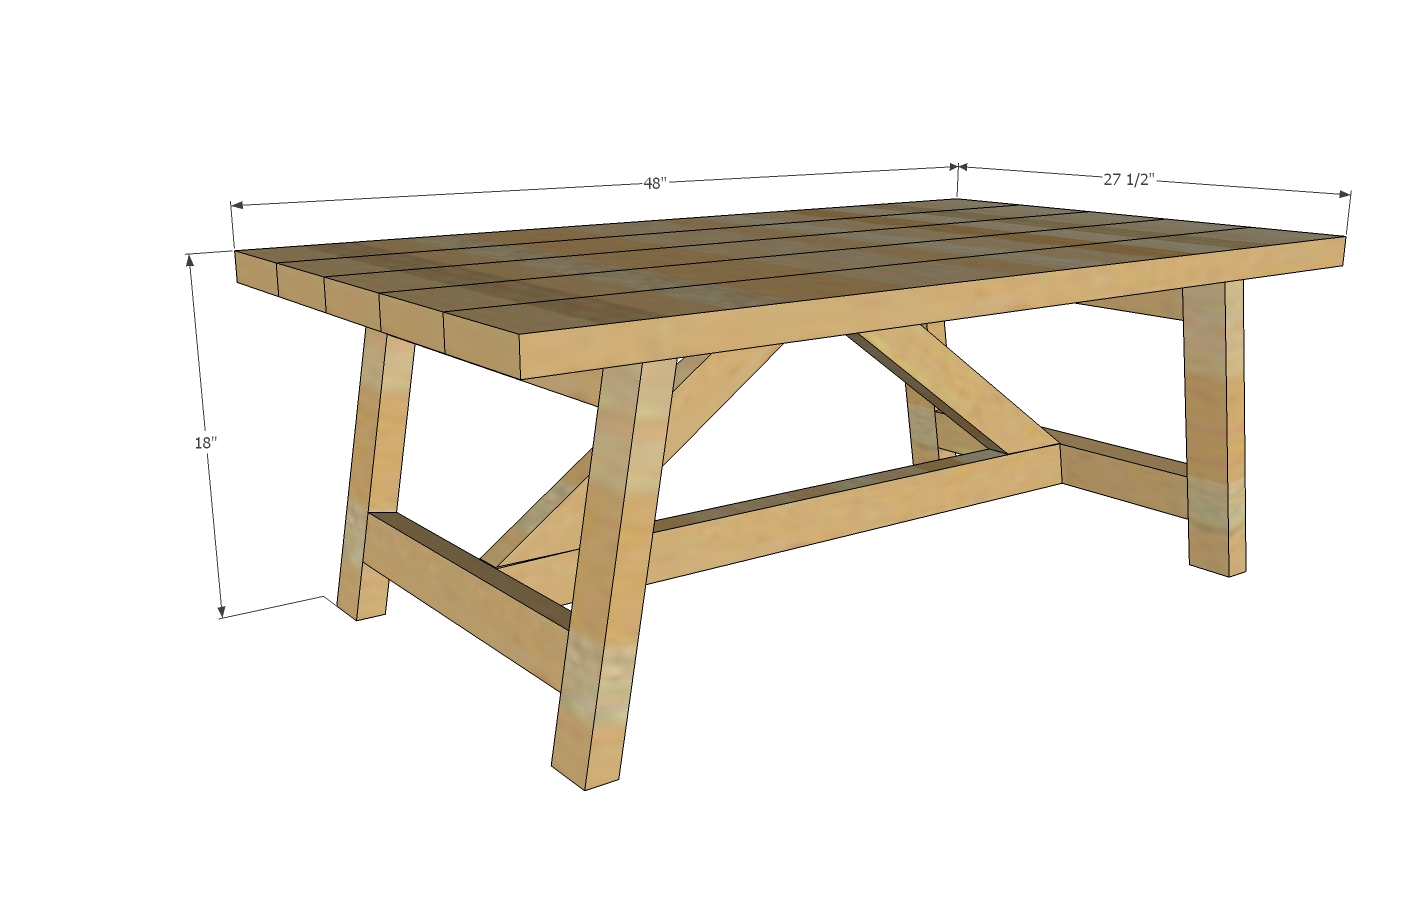 Woodworking Table Plans Ideas Plansdownload